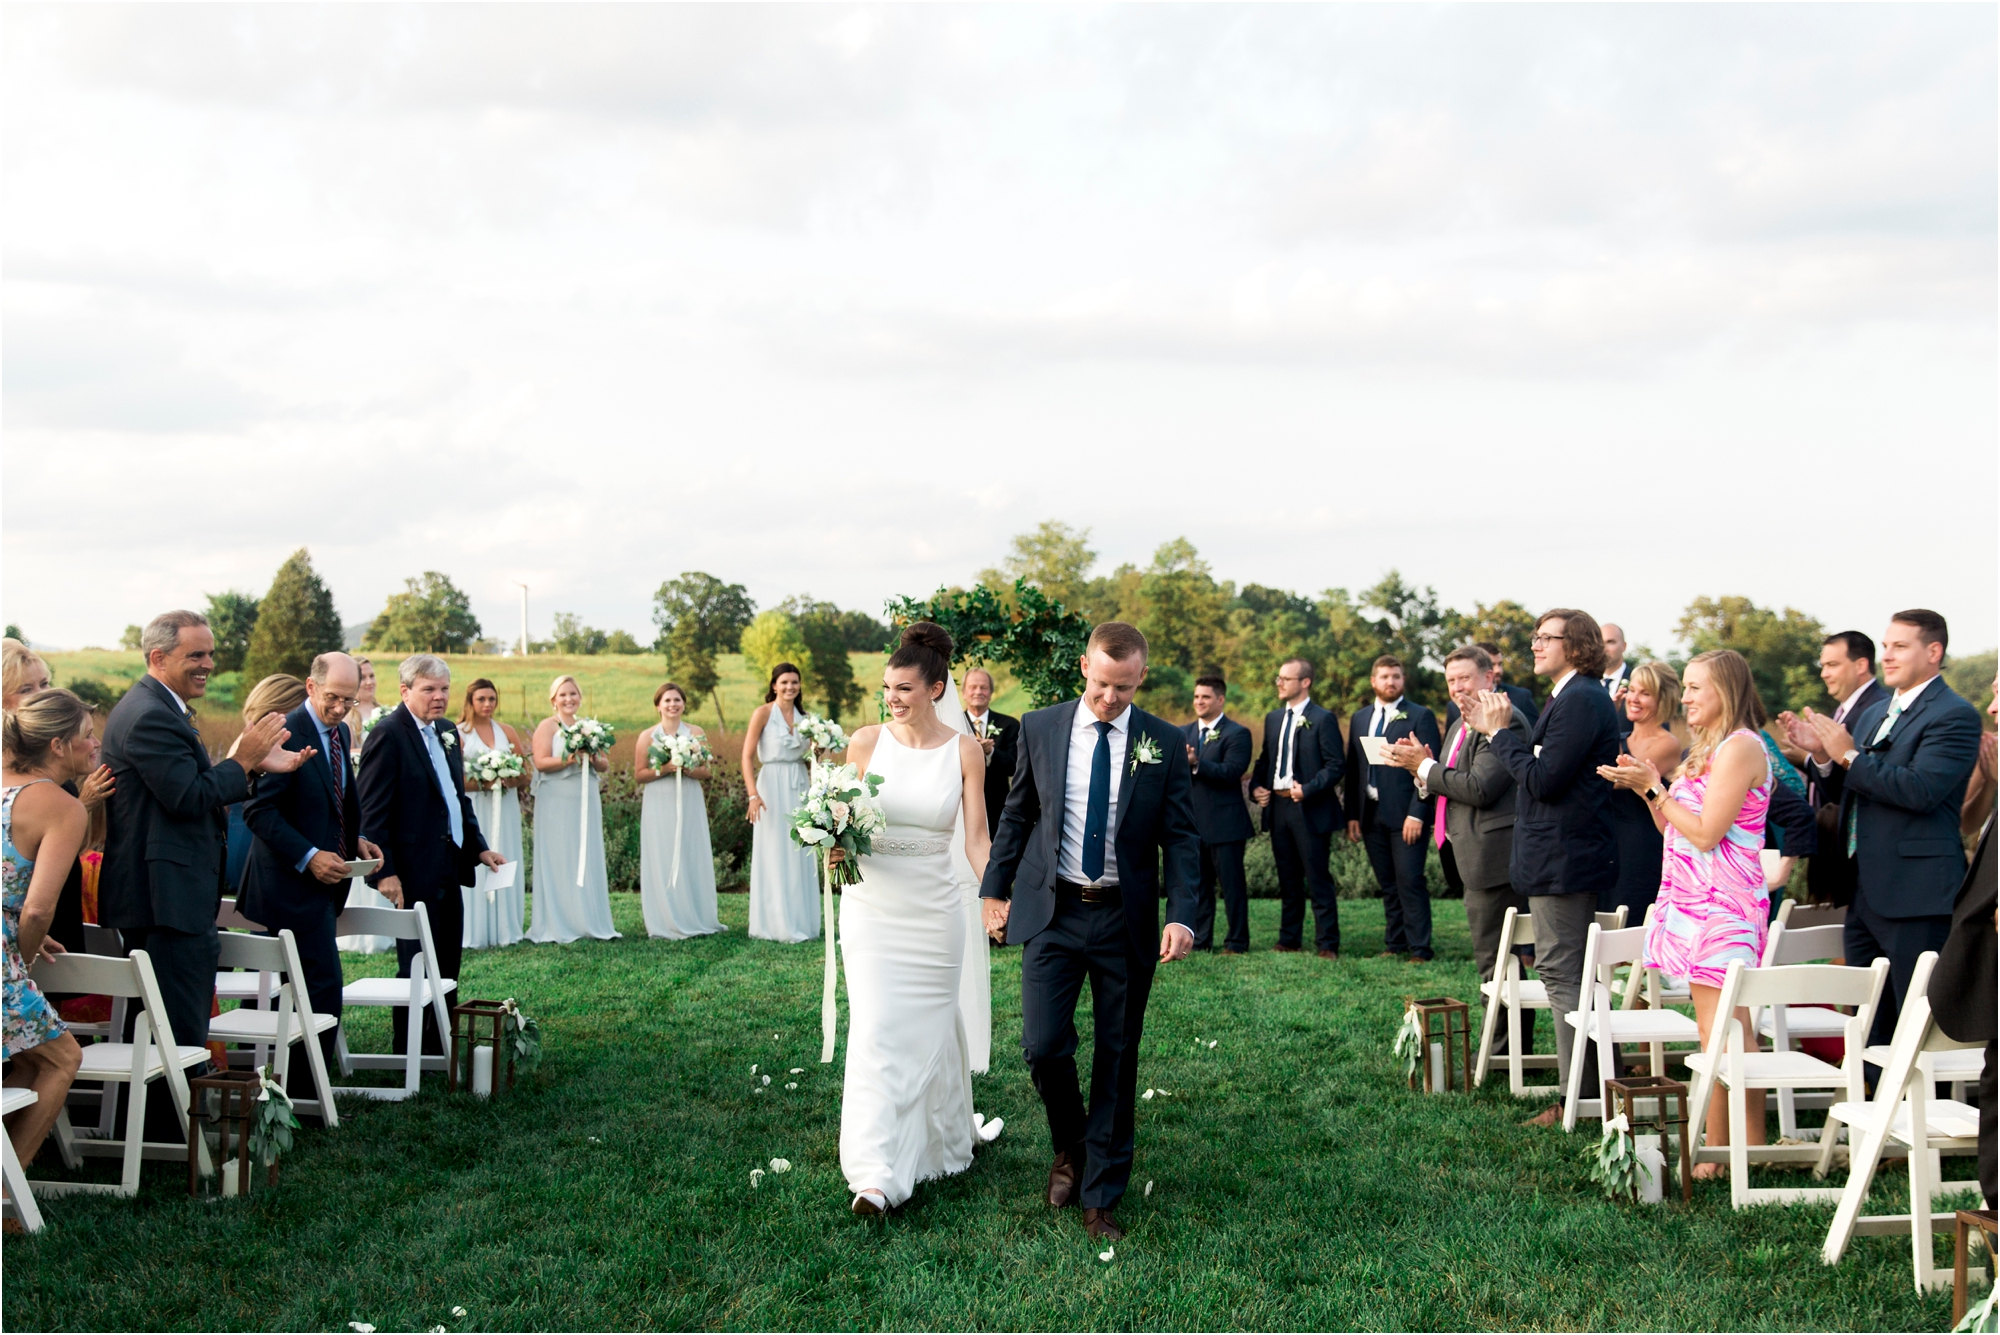 michelle-george-early-mountain-vineyard-charlottesville-virginia-wedding-photos_0029.jpg